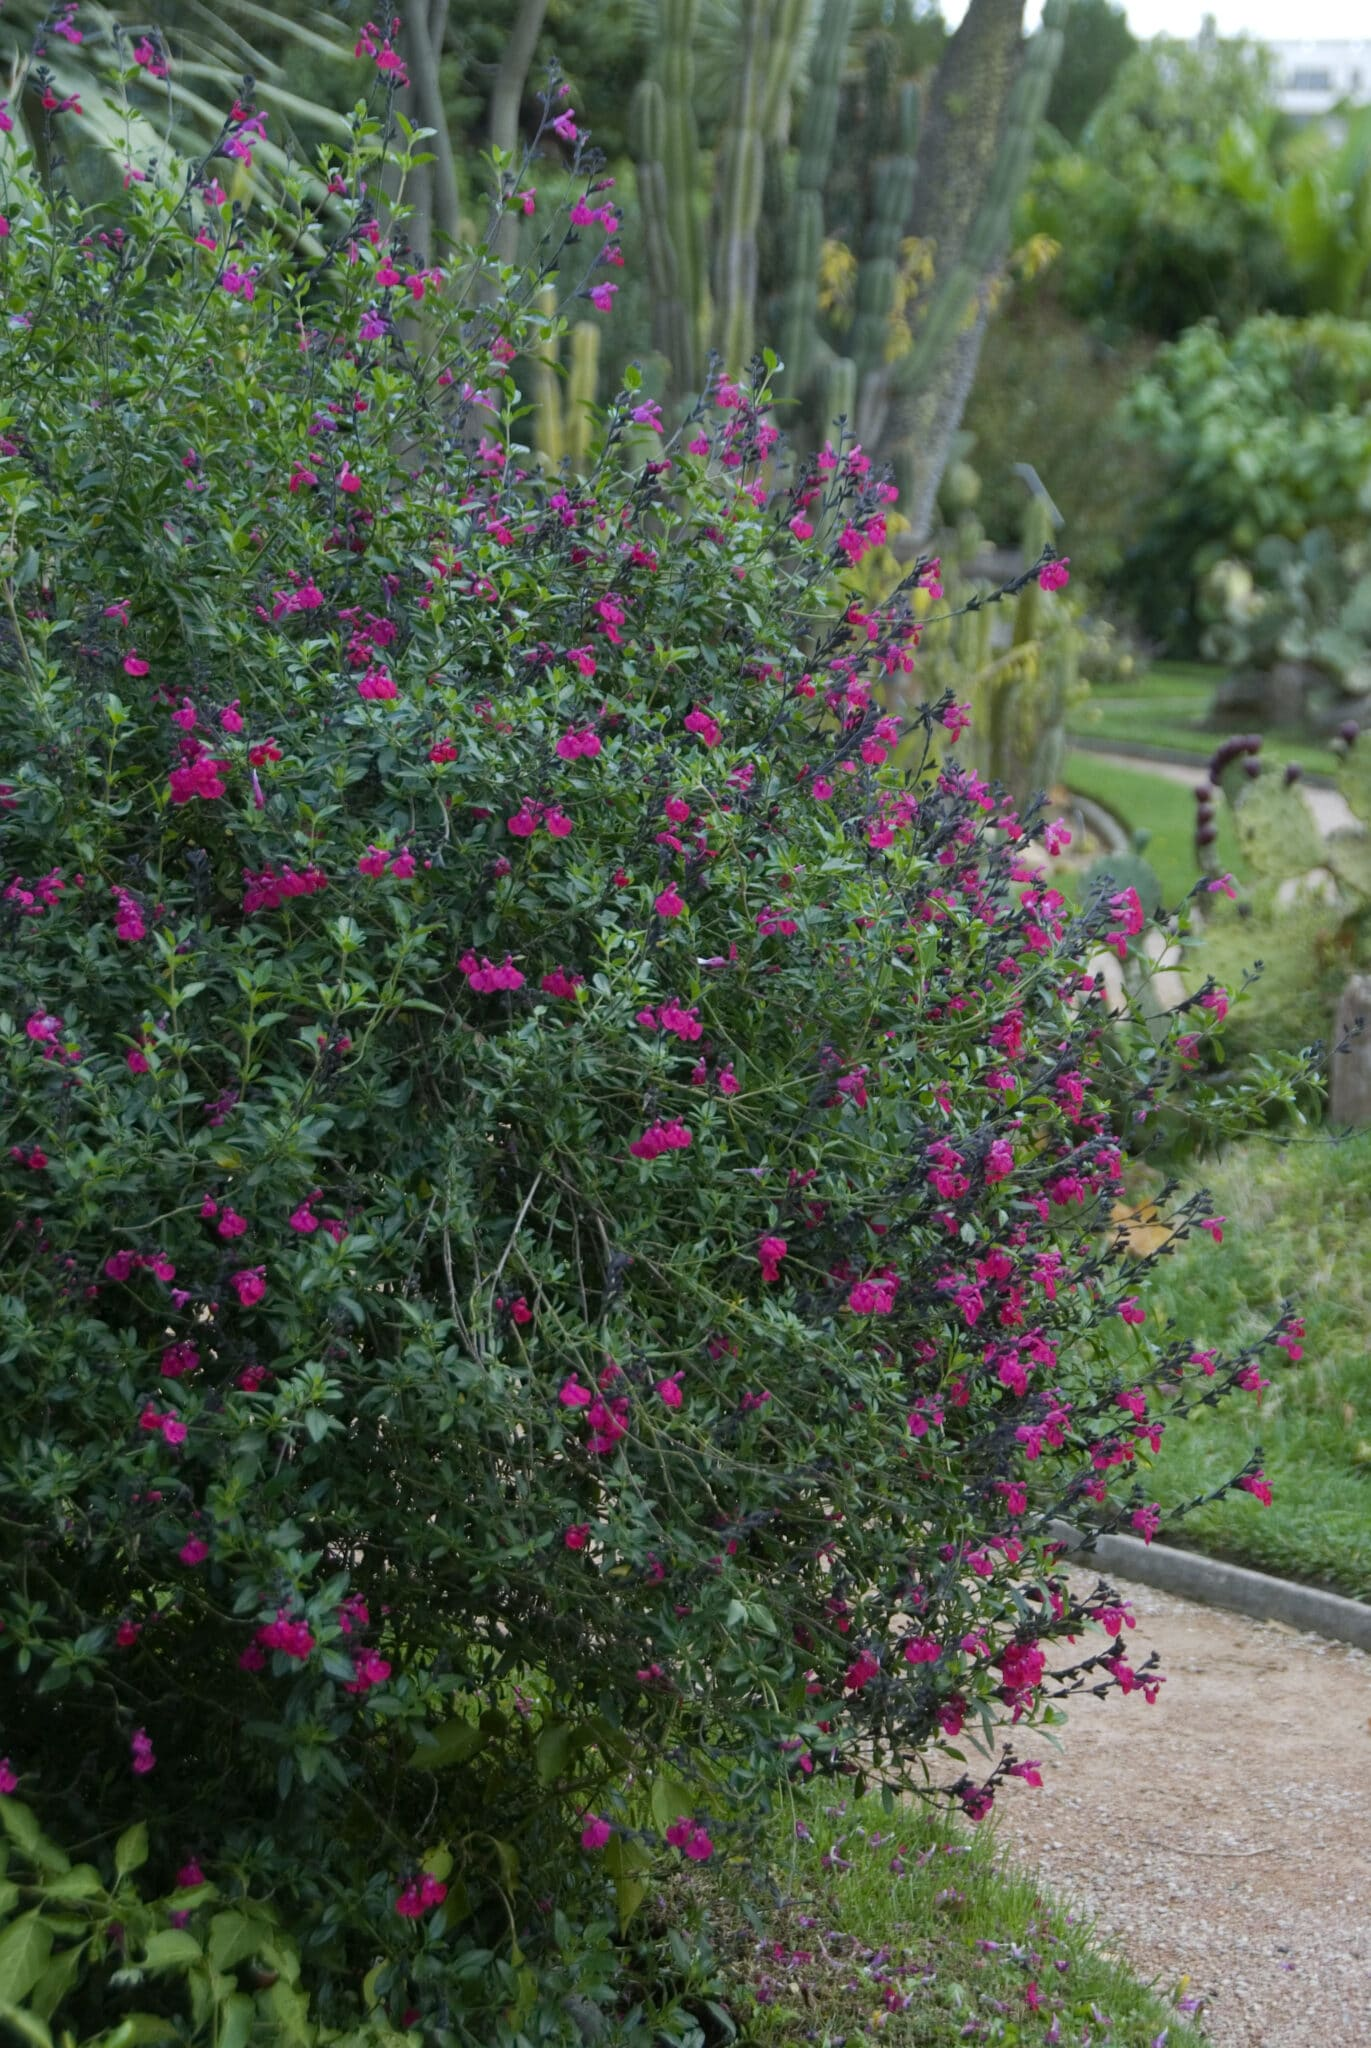 A large healthy bush of Autumn Sage growing in an outdoor garden.